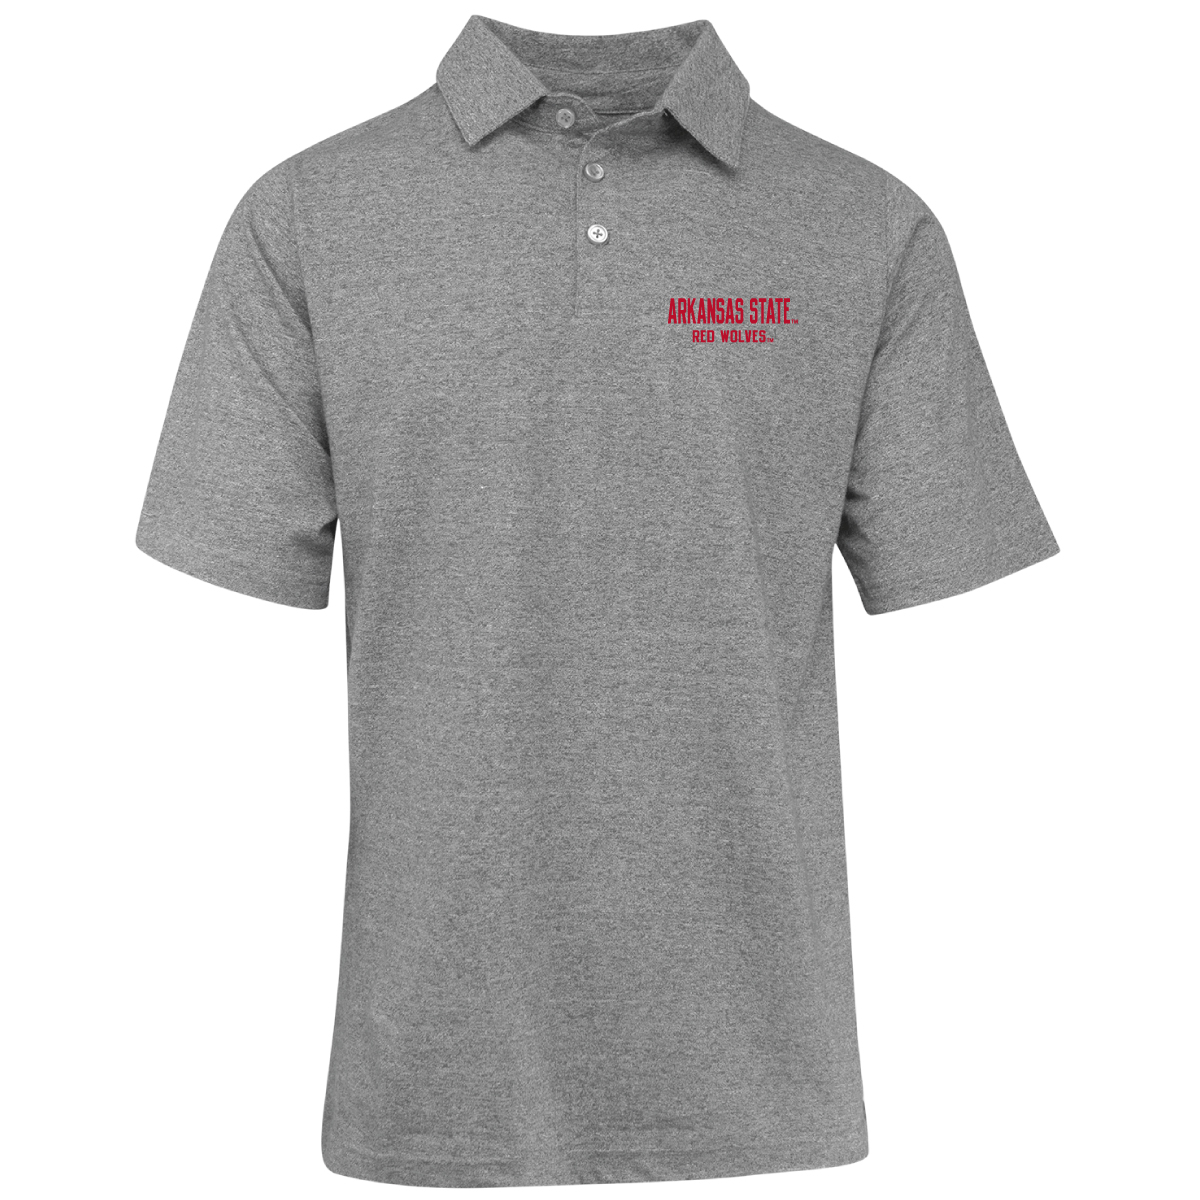 Arkansas State Yachtster Polo